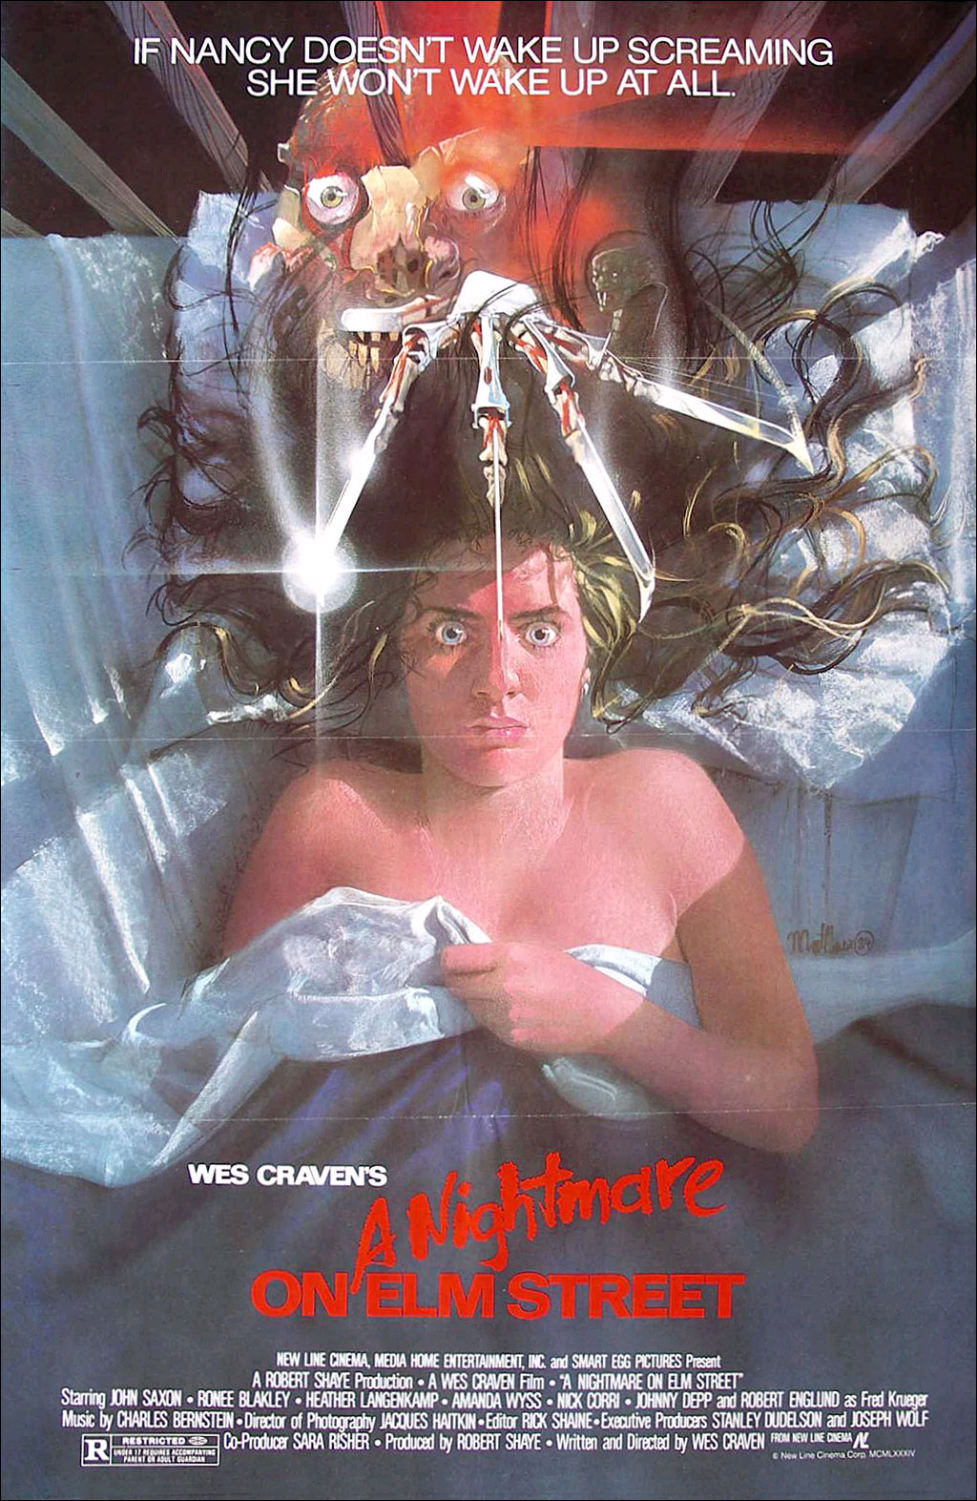 'A Nightmare on Elm Street' remains one of the classic go-to Halloween movies